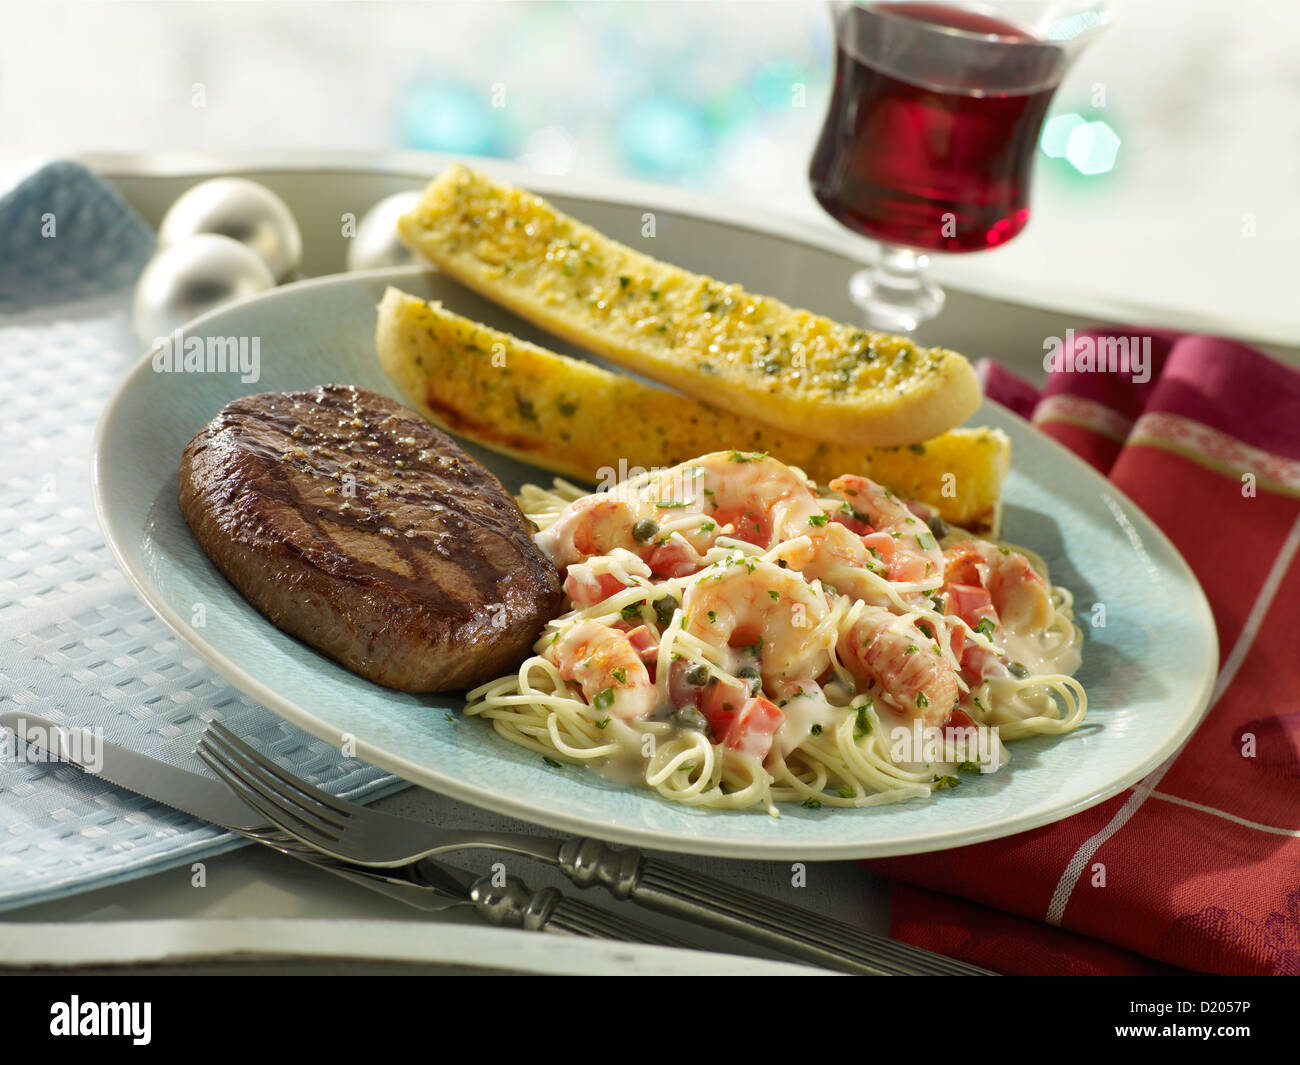 Steak And Lobster Seafood High ...